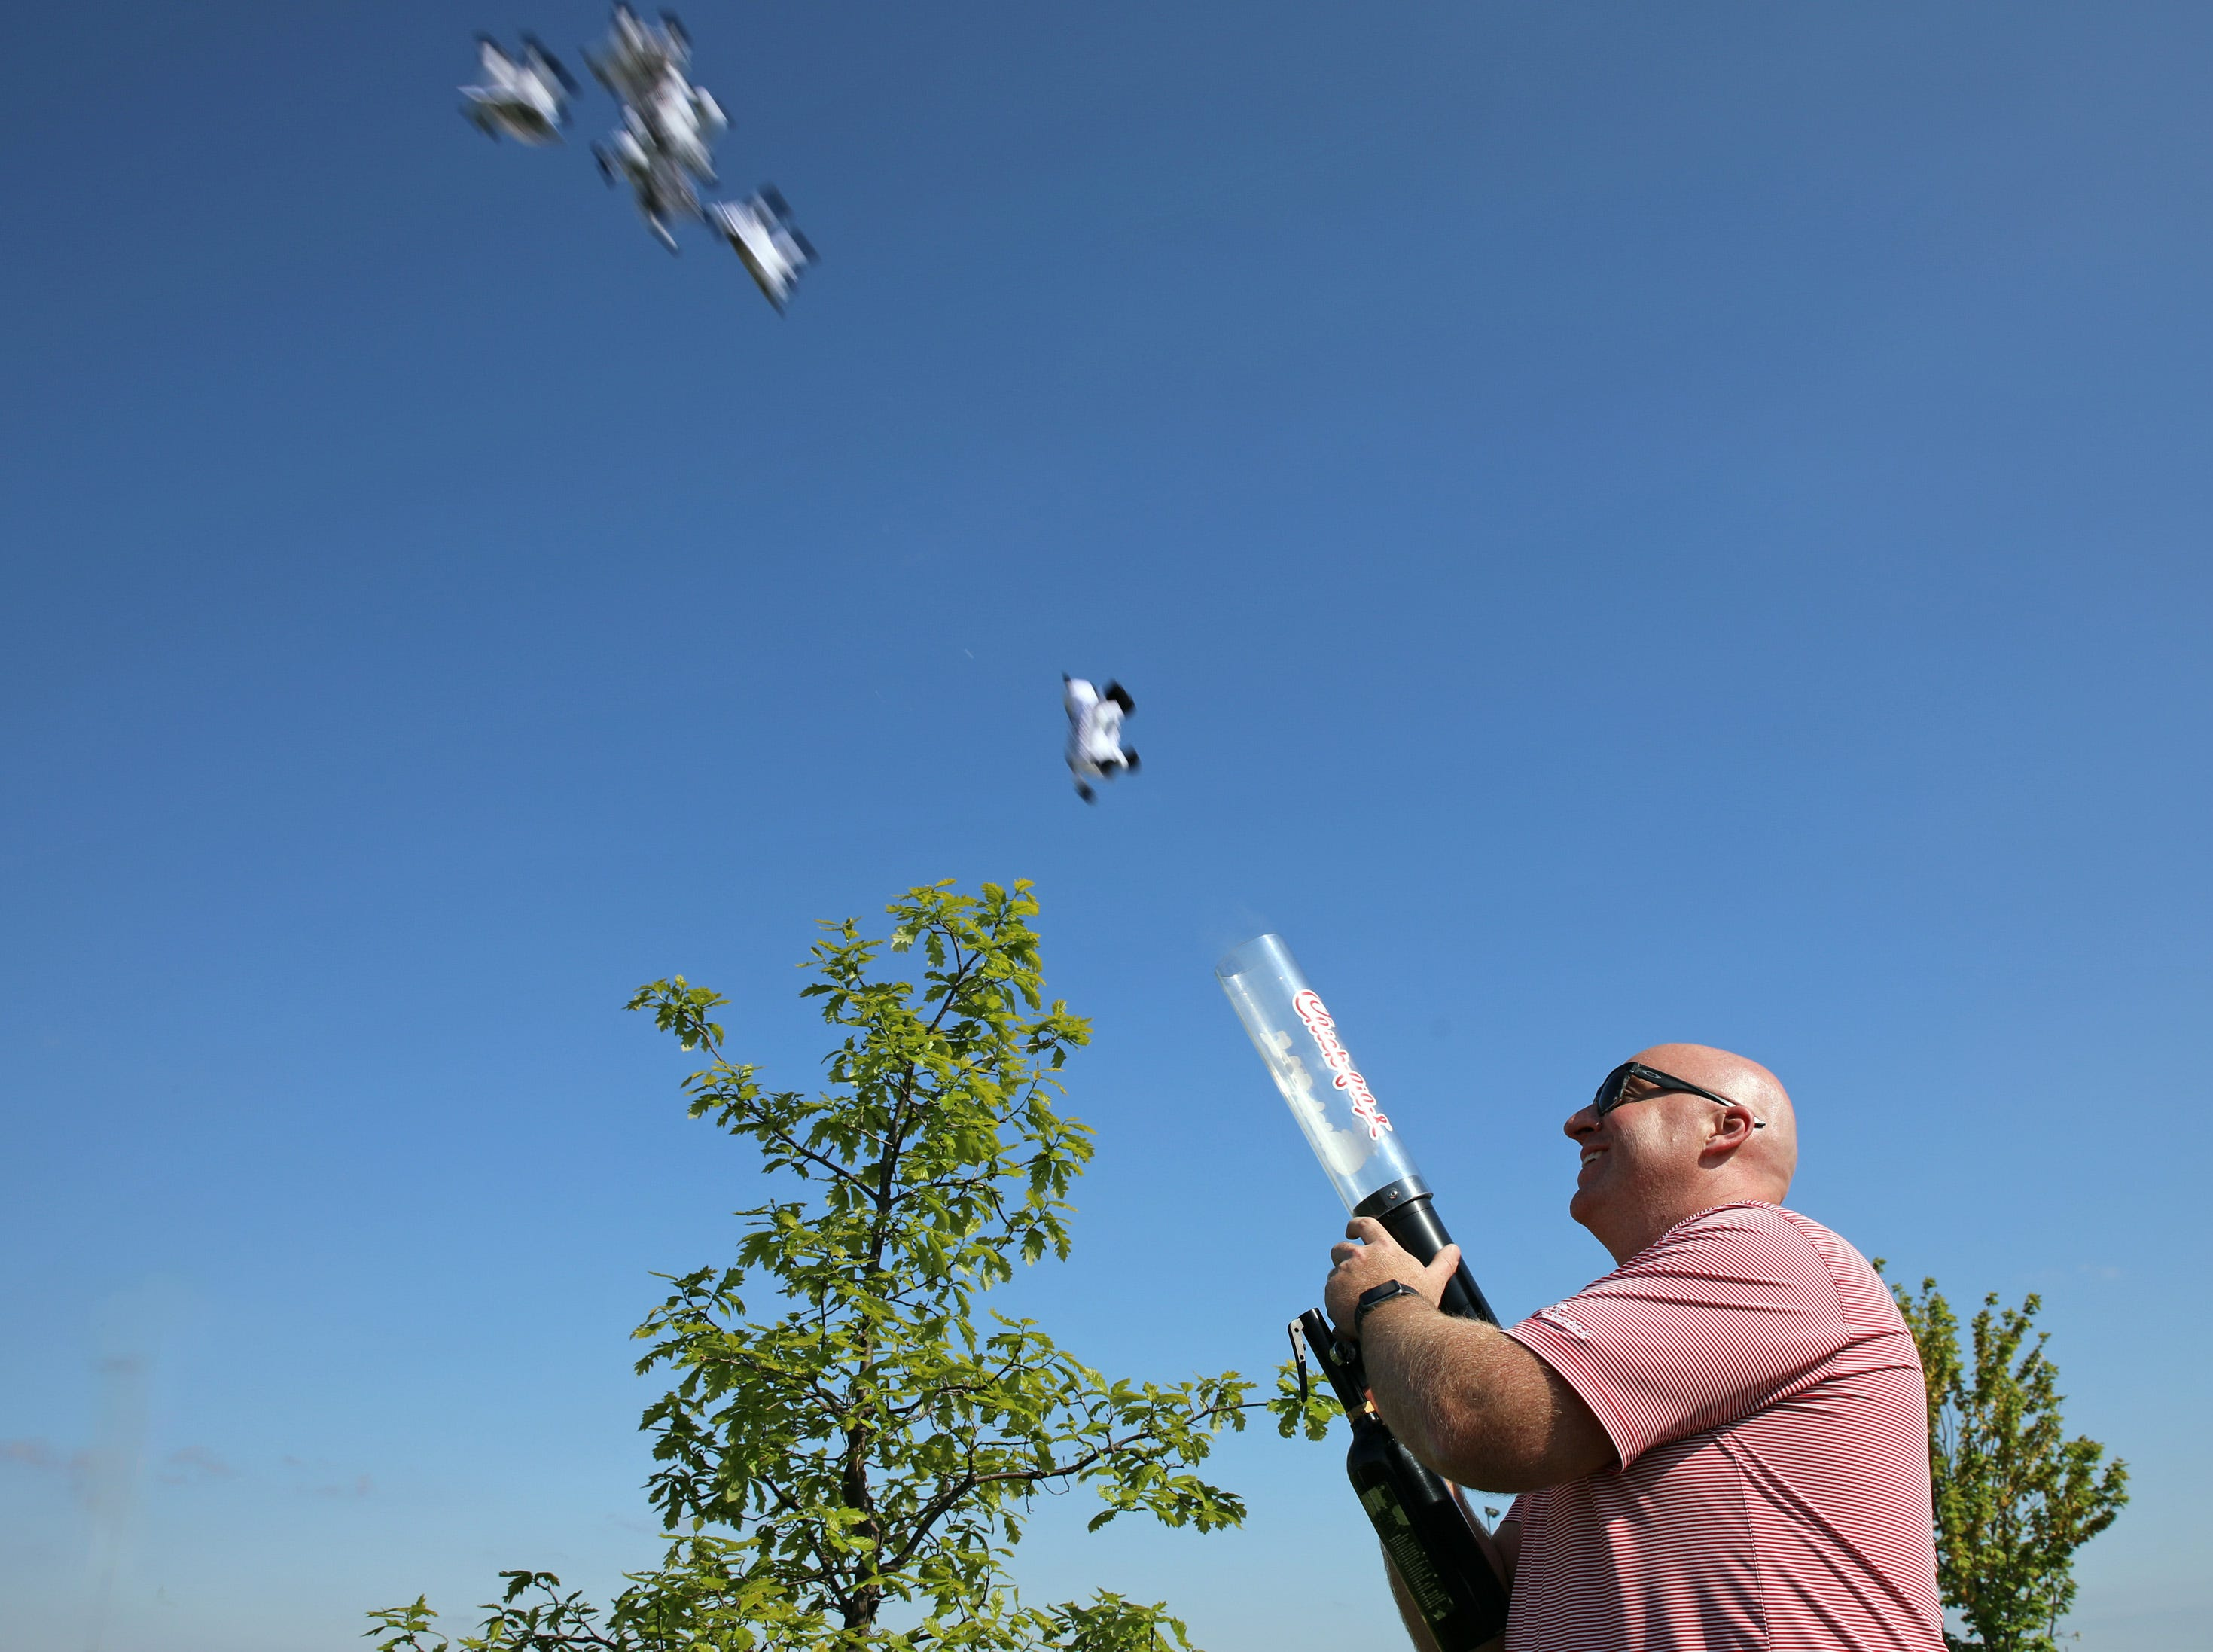 Thomas Krogman from Chick Fil-A shoots toy cows from a cannon for the kids during the Ankeny Police Week Community Picnic on Tuesday, May 14, 2019 at the Ankeny Police Headquarters located at 411 SW Ordnance Road. The event featured a tour of the police station, magician Jonathon May, free Chick Fil-A sandwiches for the first 1,000 guests, free Kona Ice, temporary tattoos, and a great opportunity to meet the officers who protect and serve the city of Ankeny.